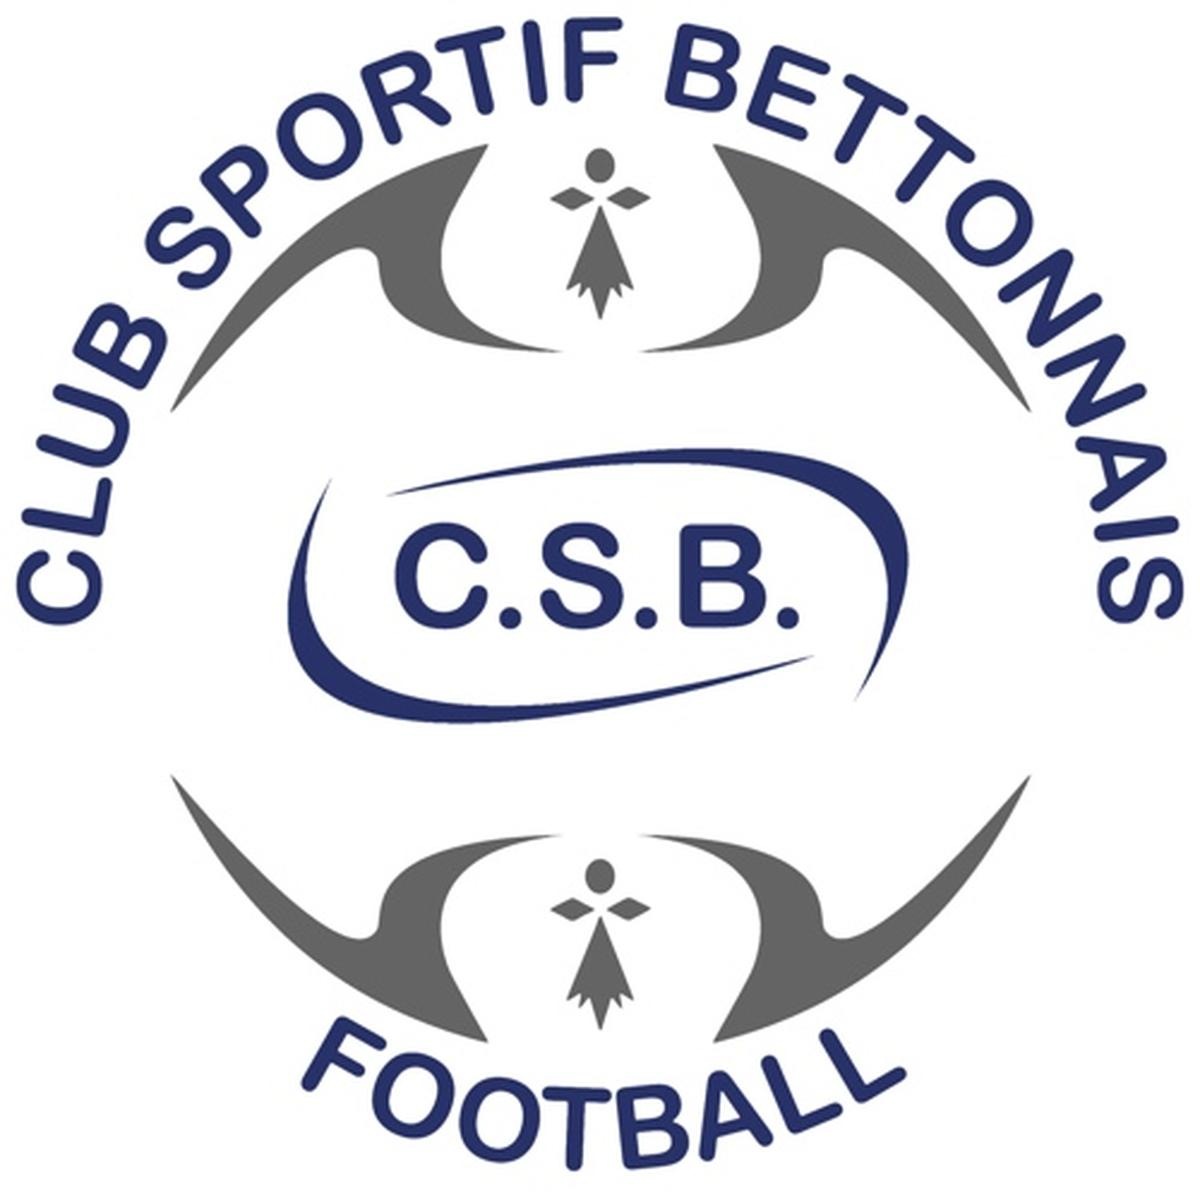 CS BETTON U11 HERBE